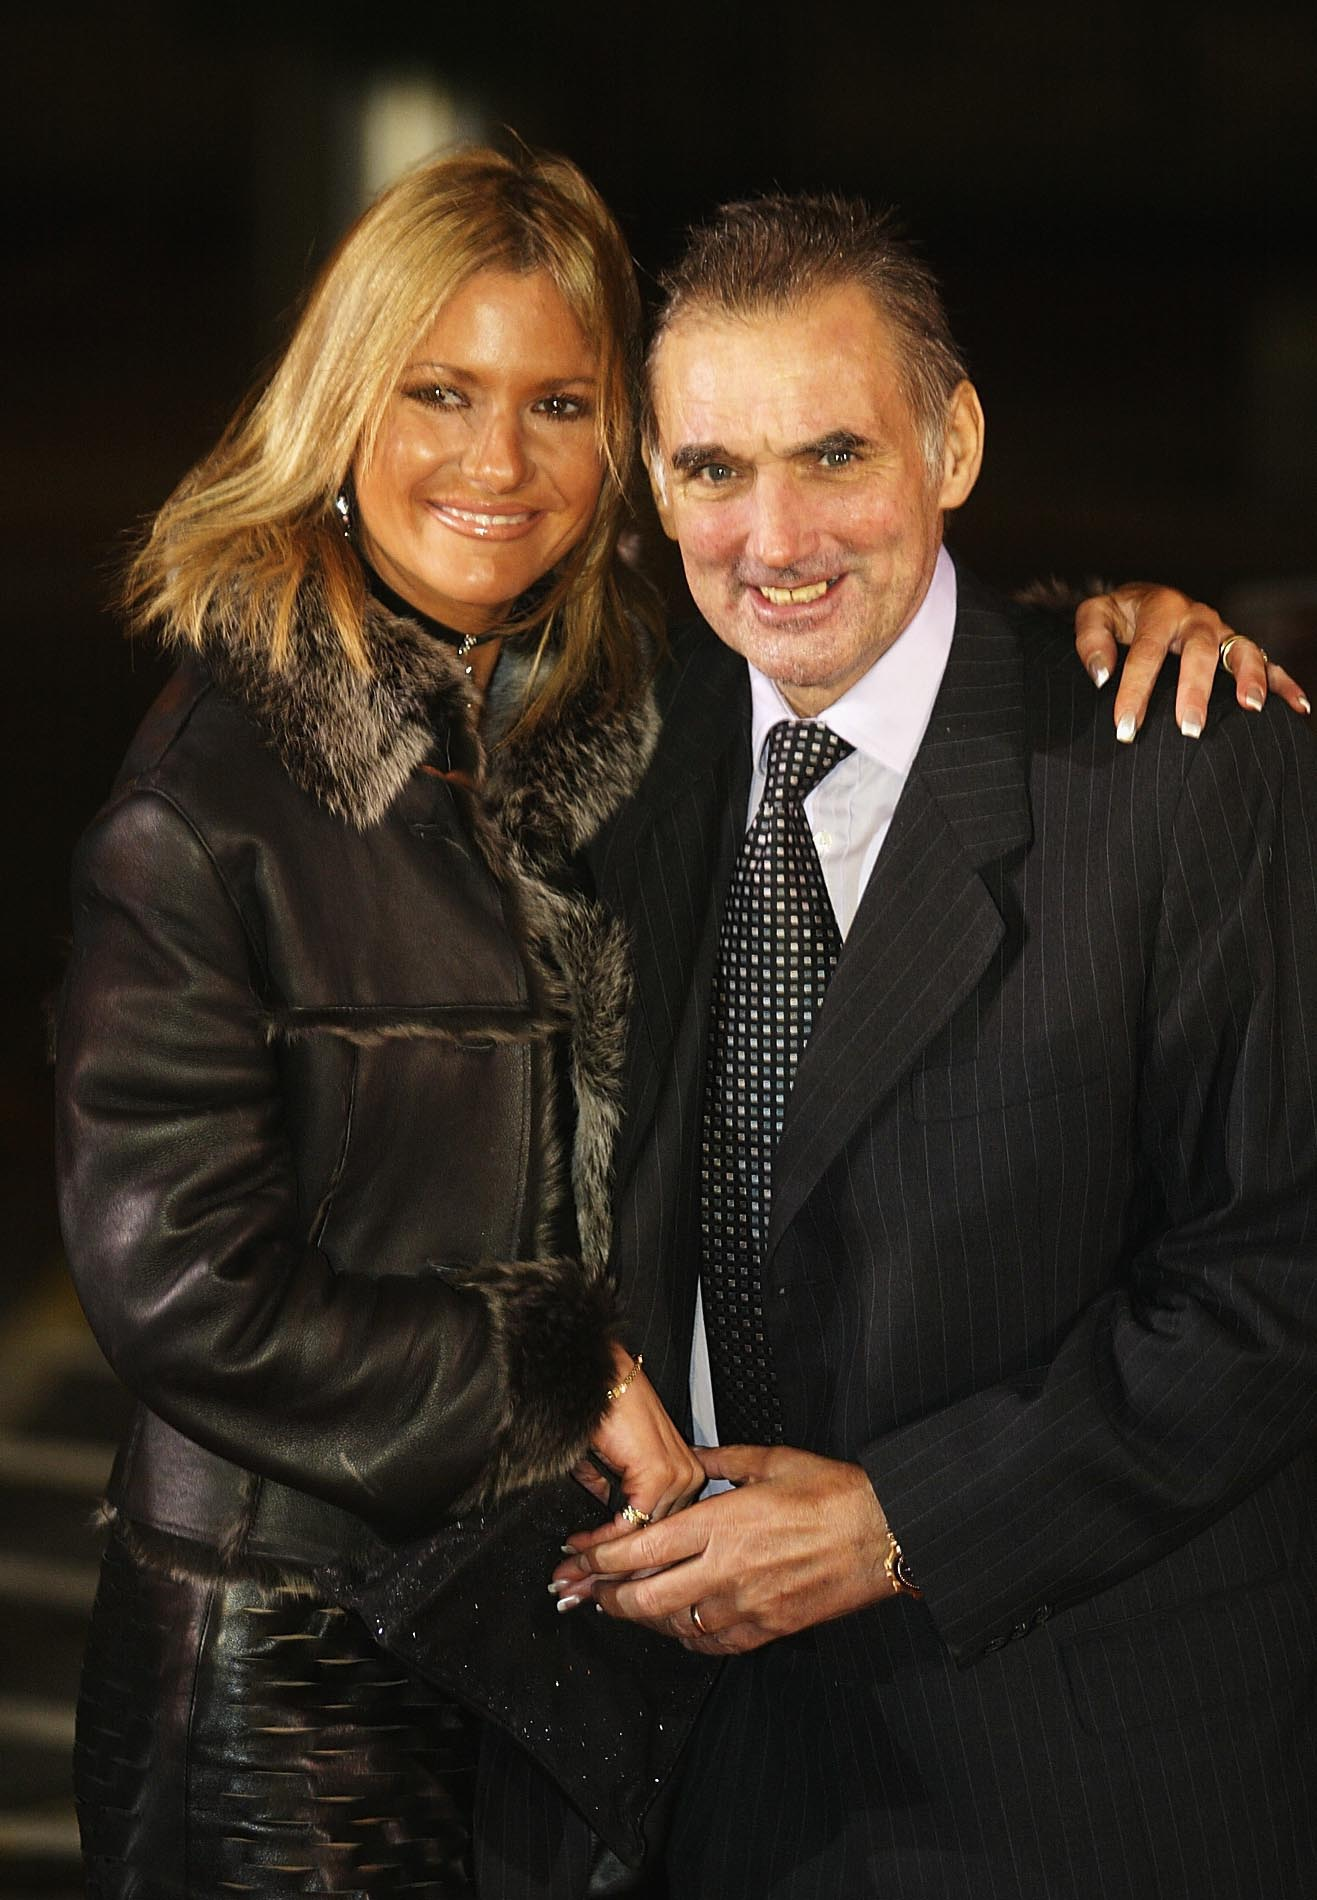 LONDON - DECEMBER 8:   George Best poses with his wife Alex as they arrive for the BBC Sports Personality of the Year Awards held at the BBC Television Centre in London, December 8, 2002. (Photo by Warren Little/Getty Images)